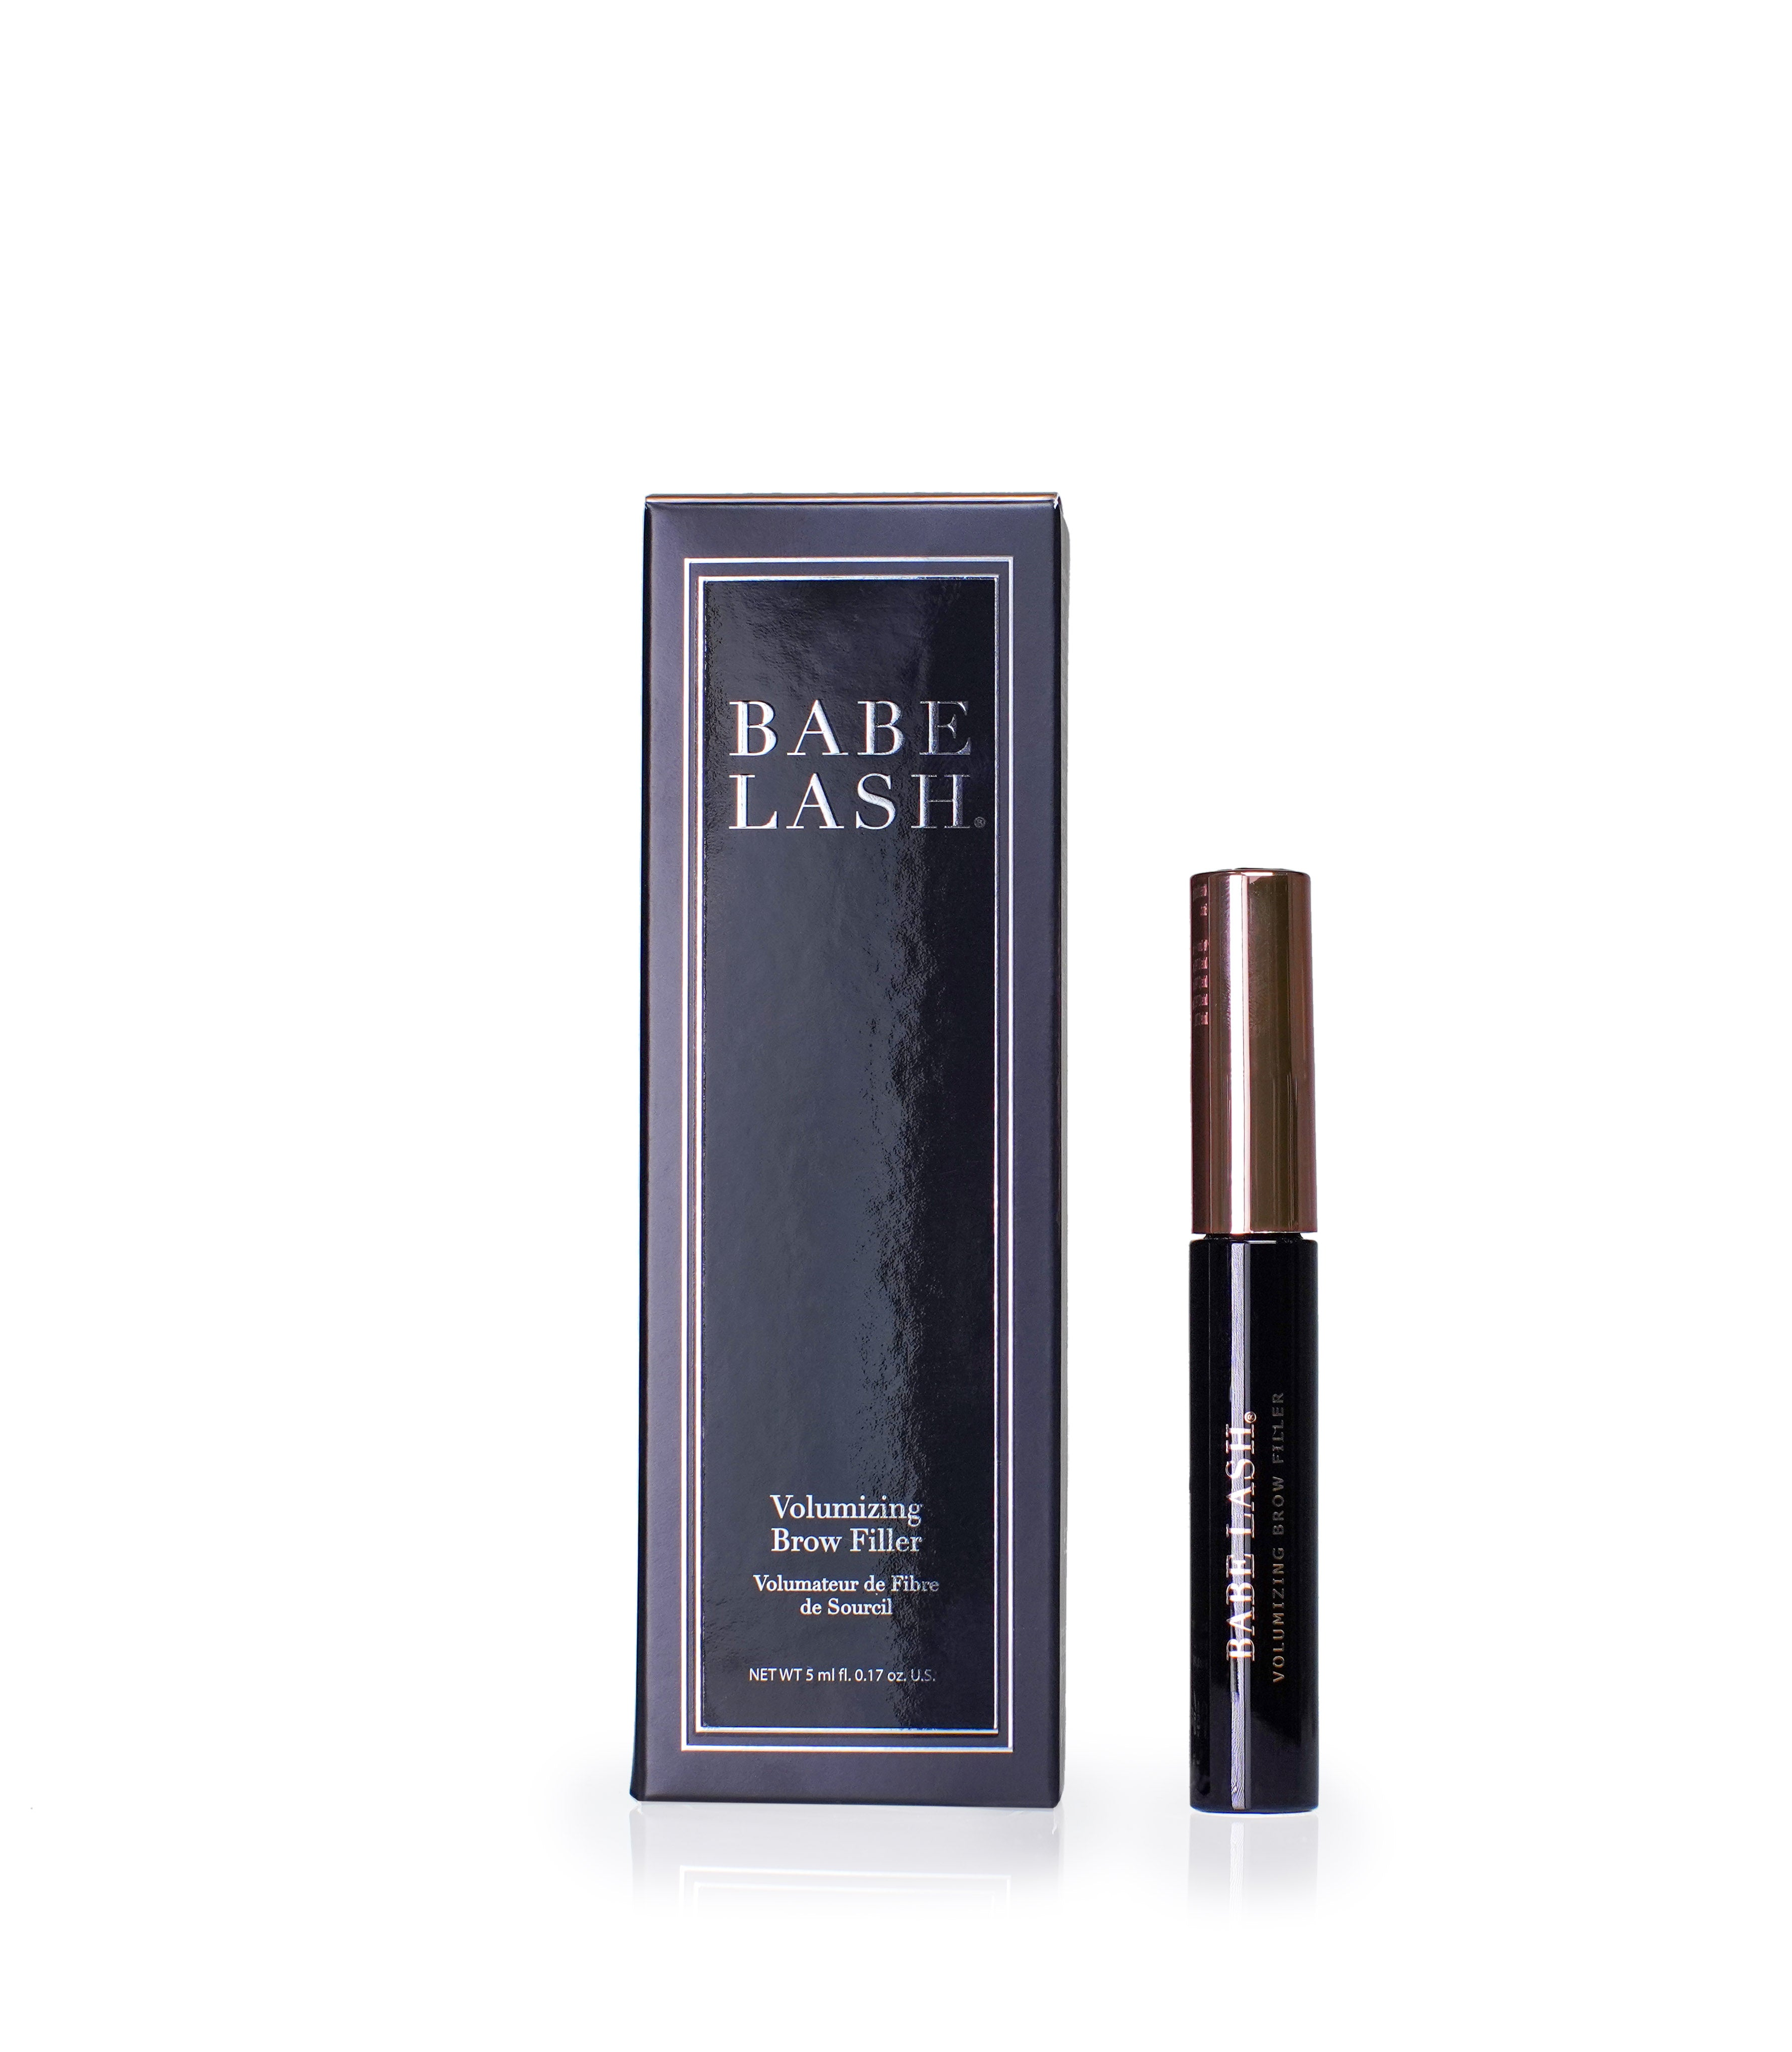 BABE LASH - VOLUMIZING BROW FILLER (DARK BROWN) - MyVaniteeCase